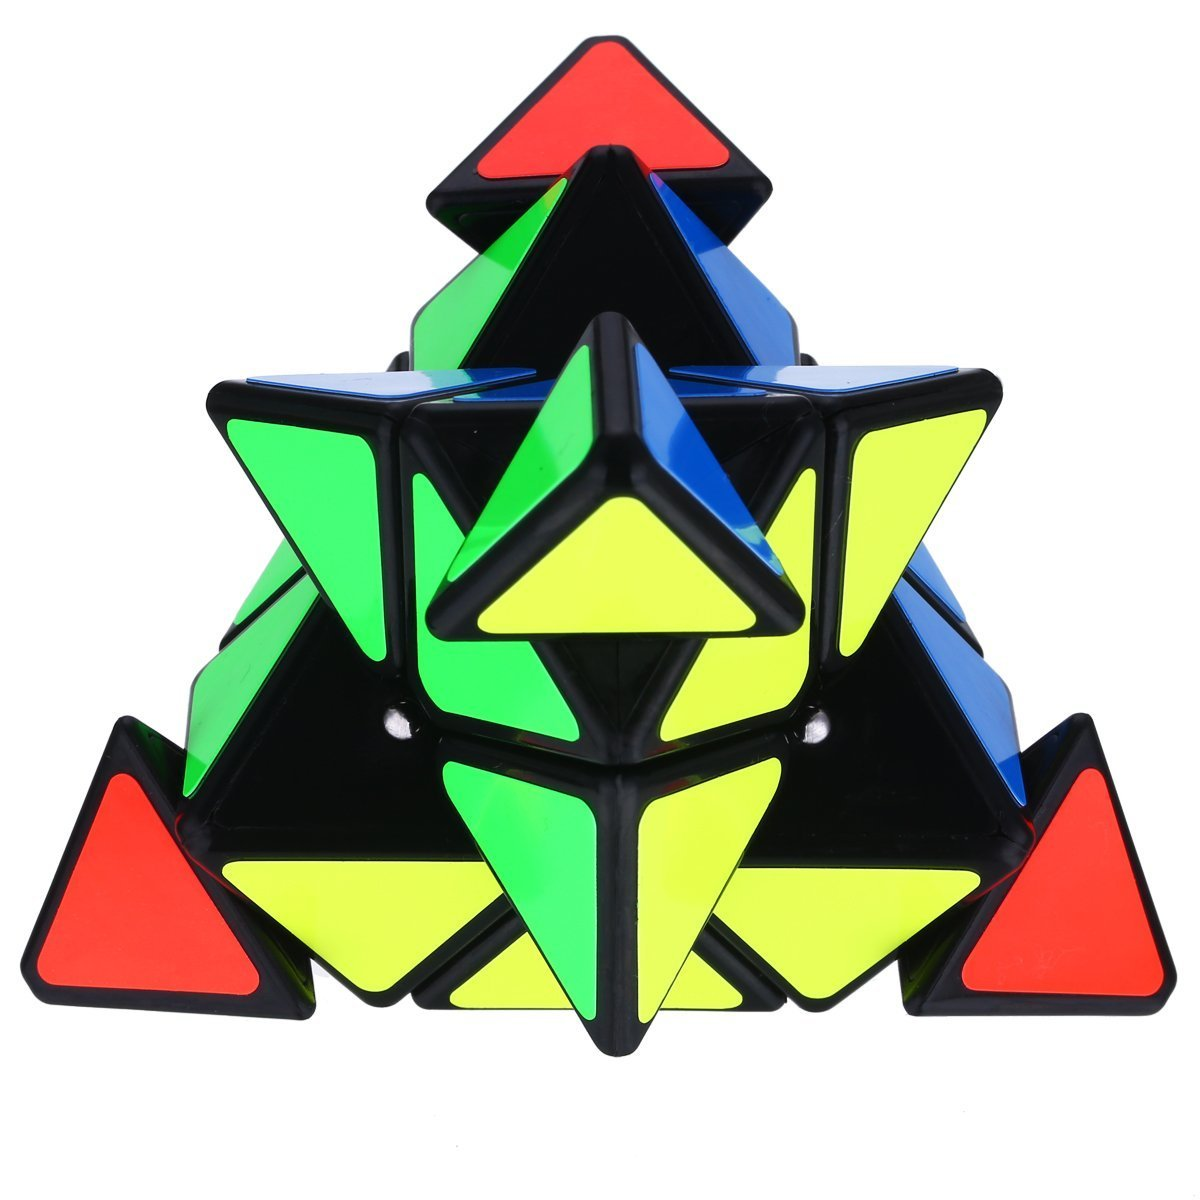 Aiduy Magic Cube,Triangle Pyraminx Pyramid Speed Cube Twist Toy Game Education For Children